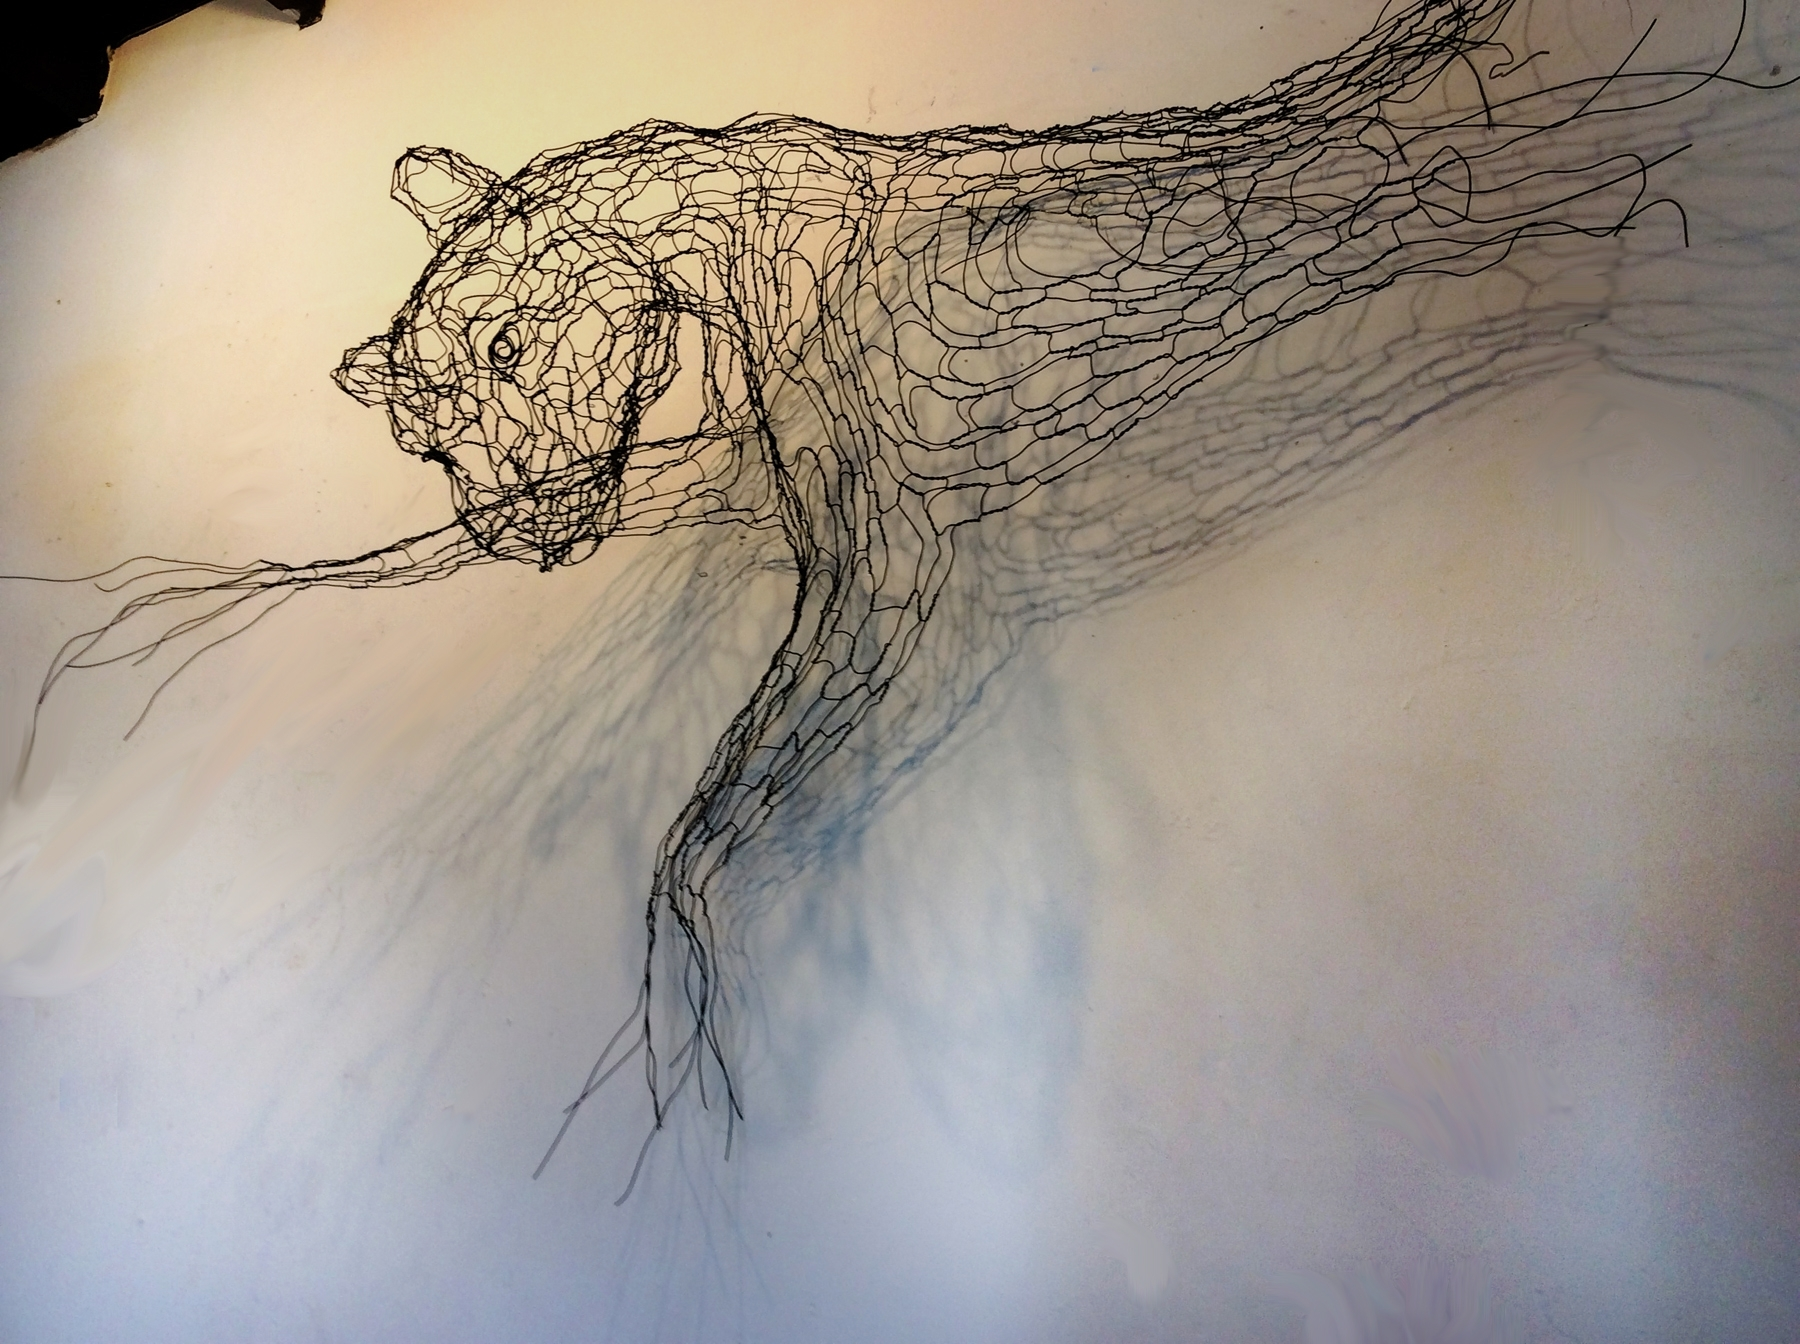 Wire Wall Art | Wire Sculpture And Illustration Within Most Up To Date Wire Wall Art (View 19 of 20)